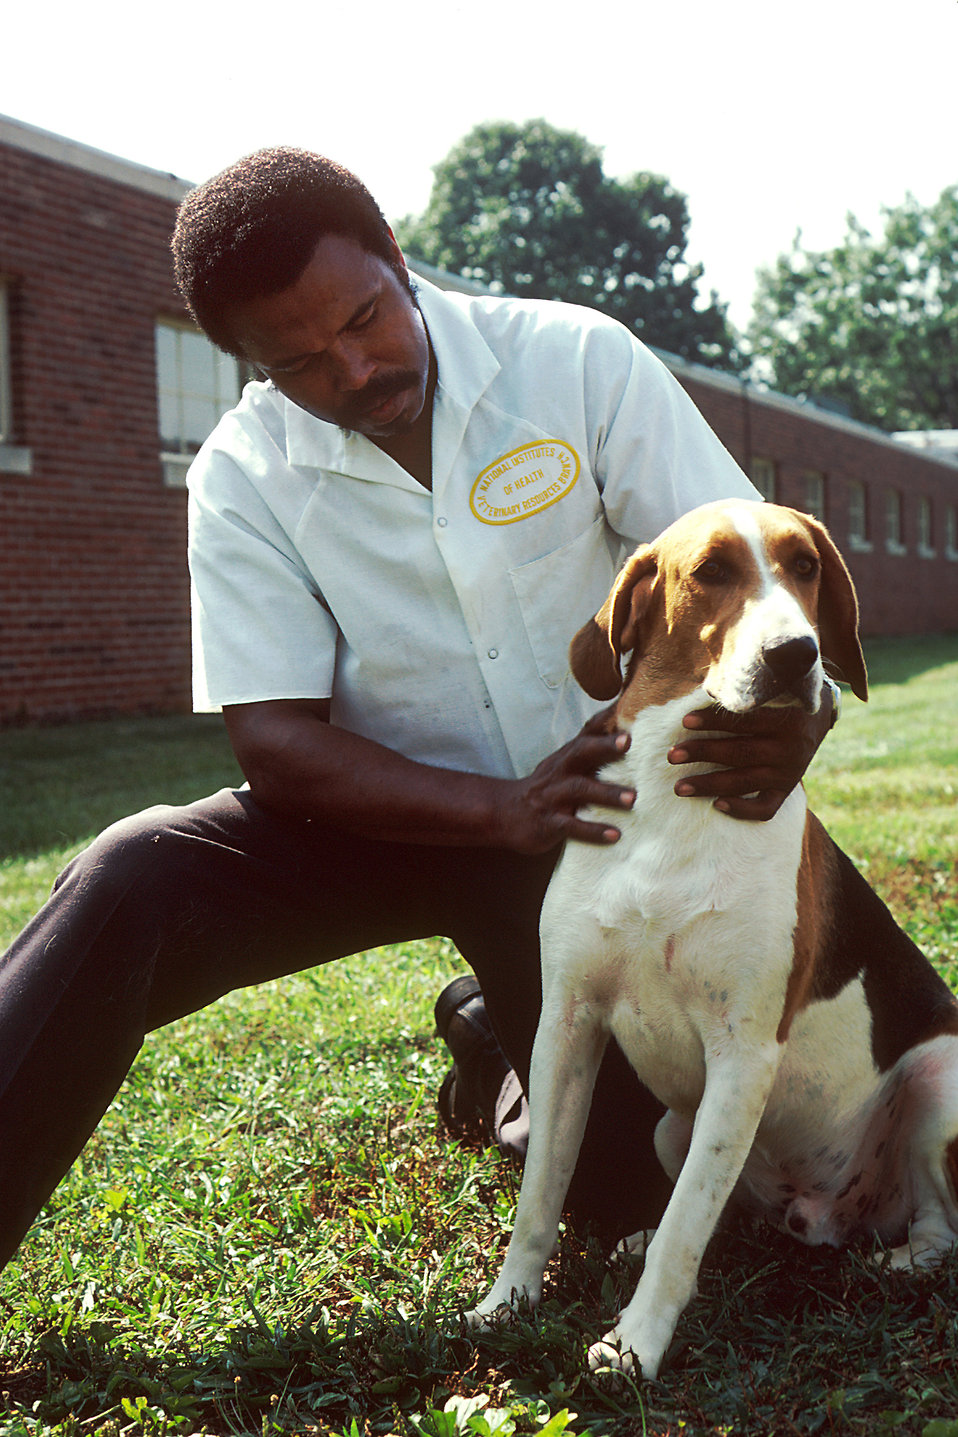 Pictured is a handler, kneeling, wearing a white lab shirt. He is holding a fox hound.